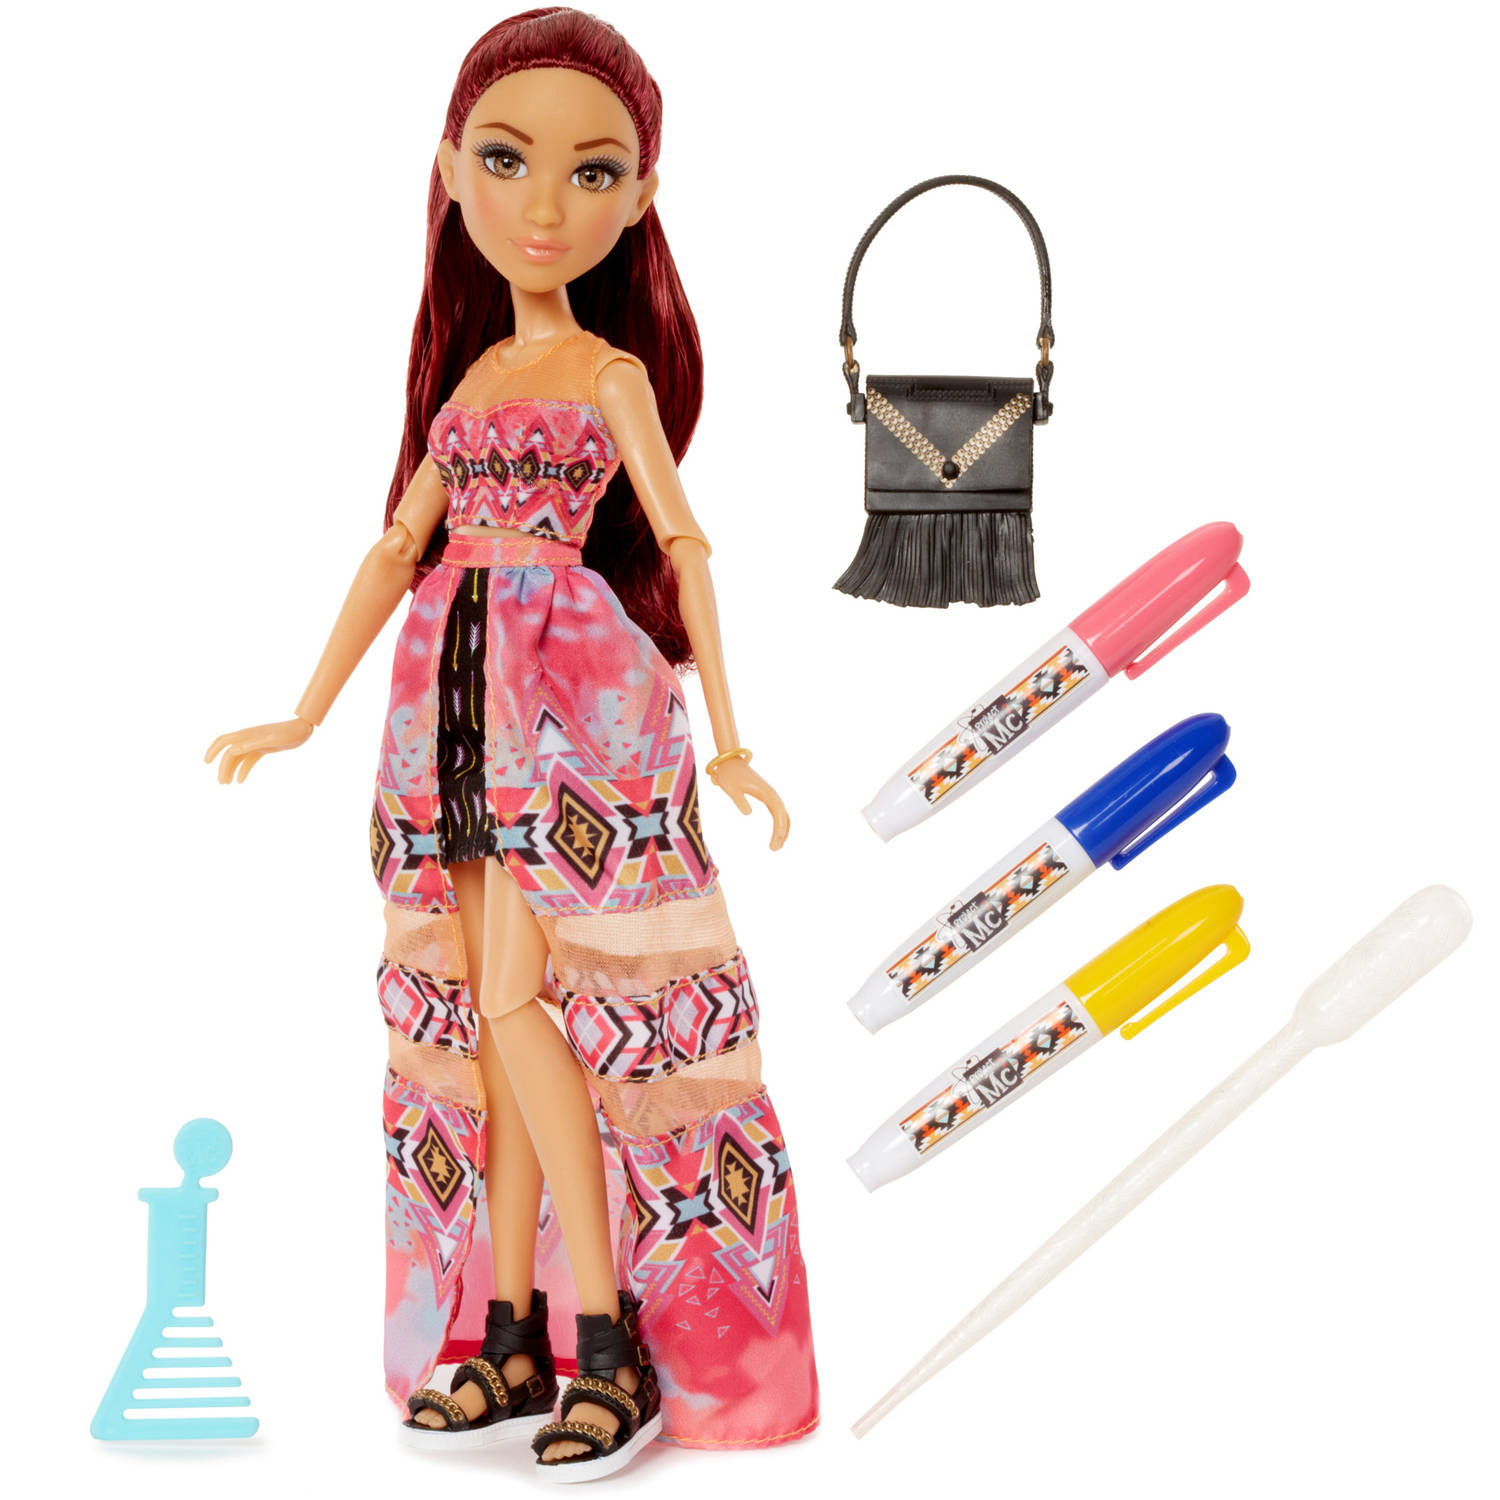 Project Mc2 Experiments with Doll, Camryn's Tie Dye